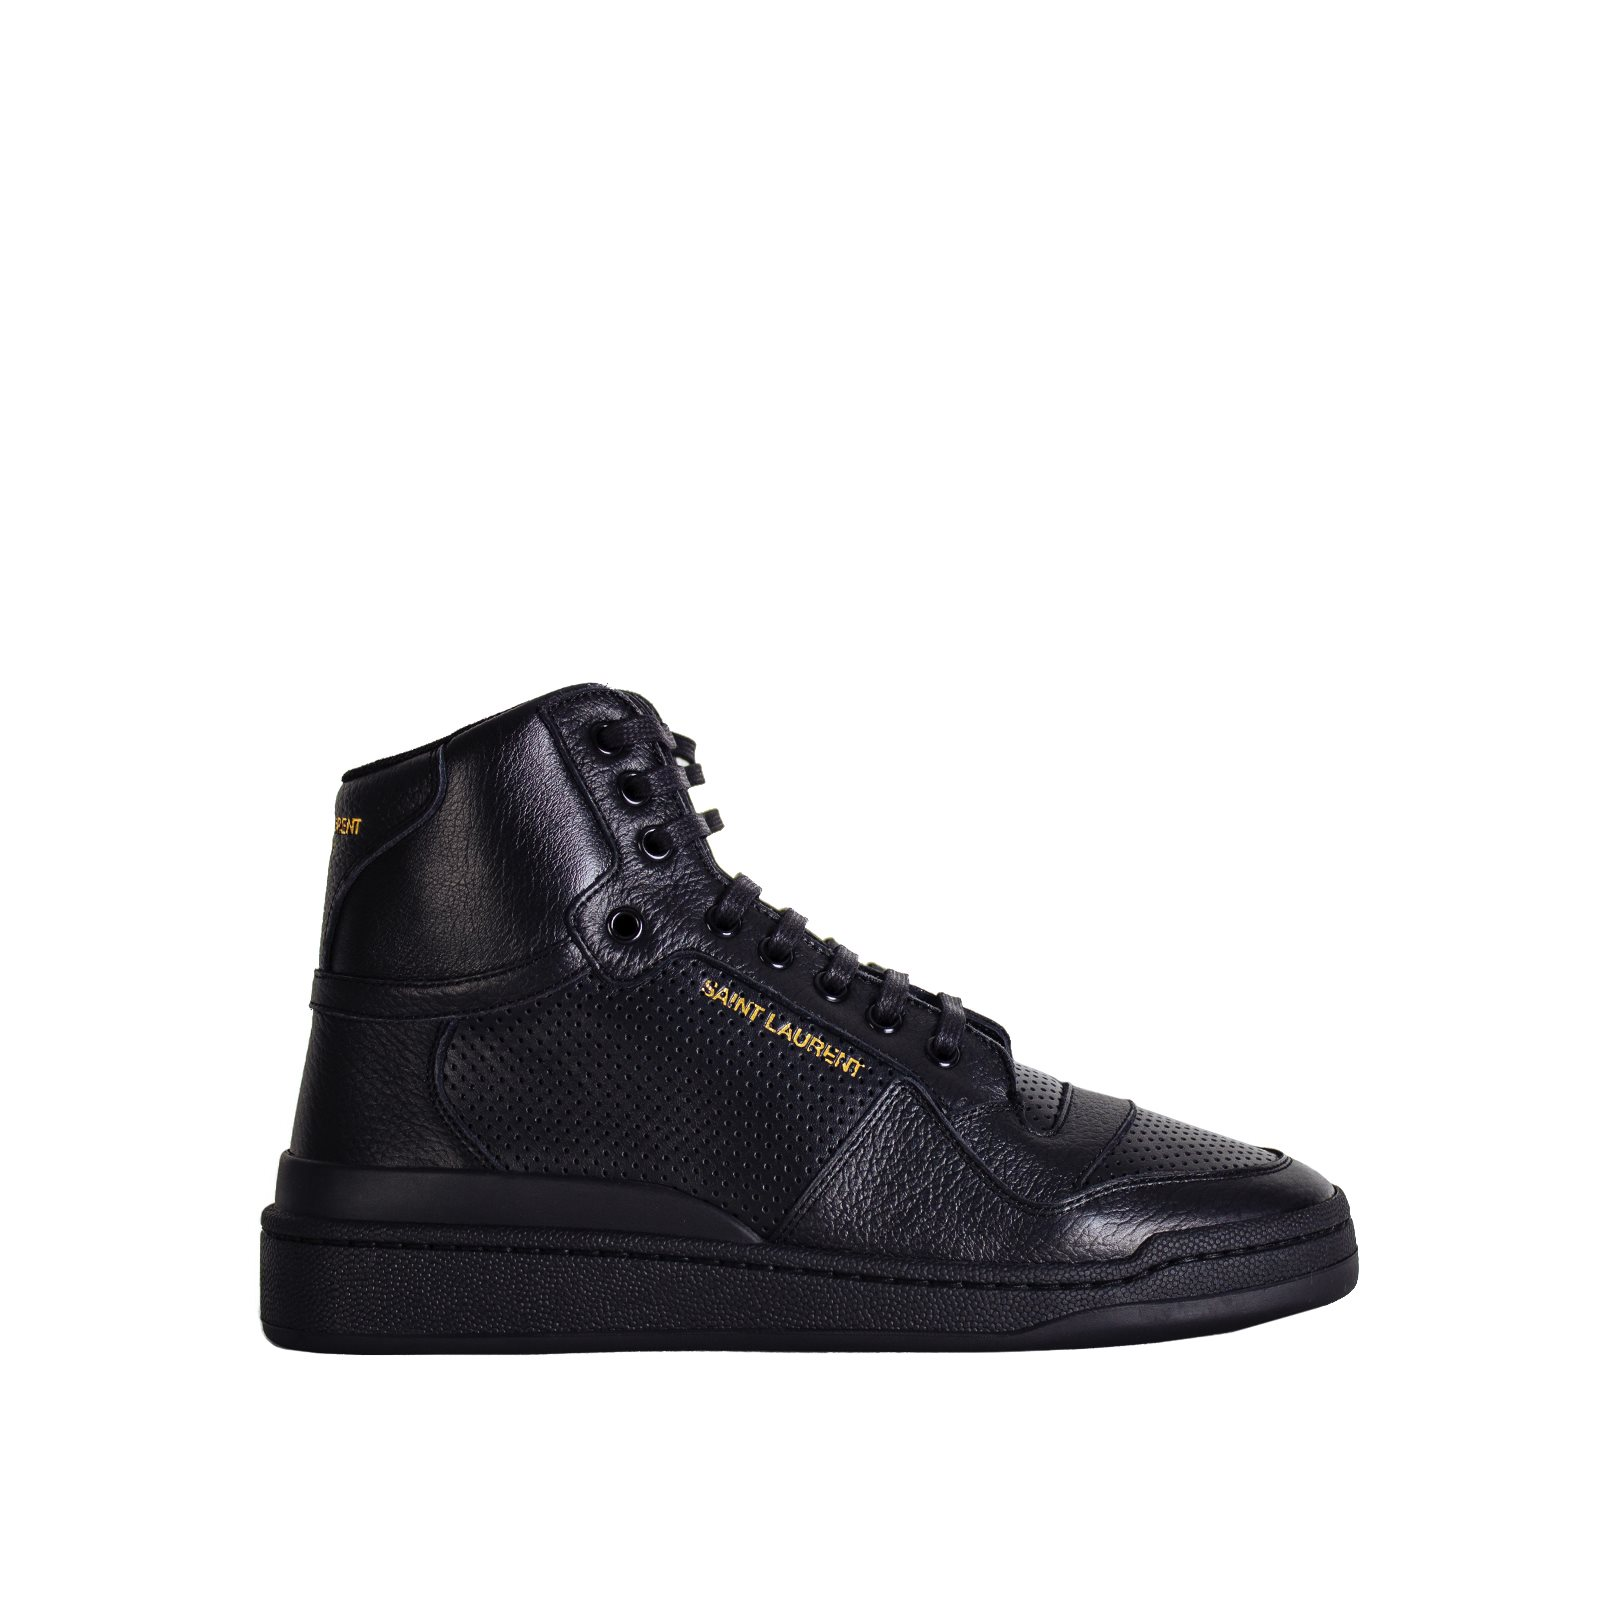 Saint Laurent Paris Hightop